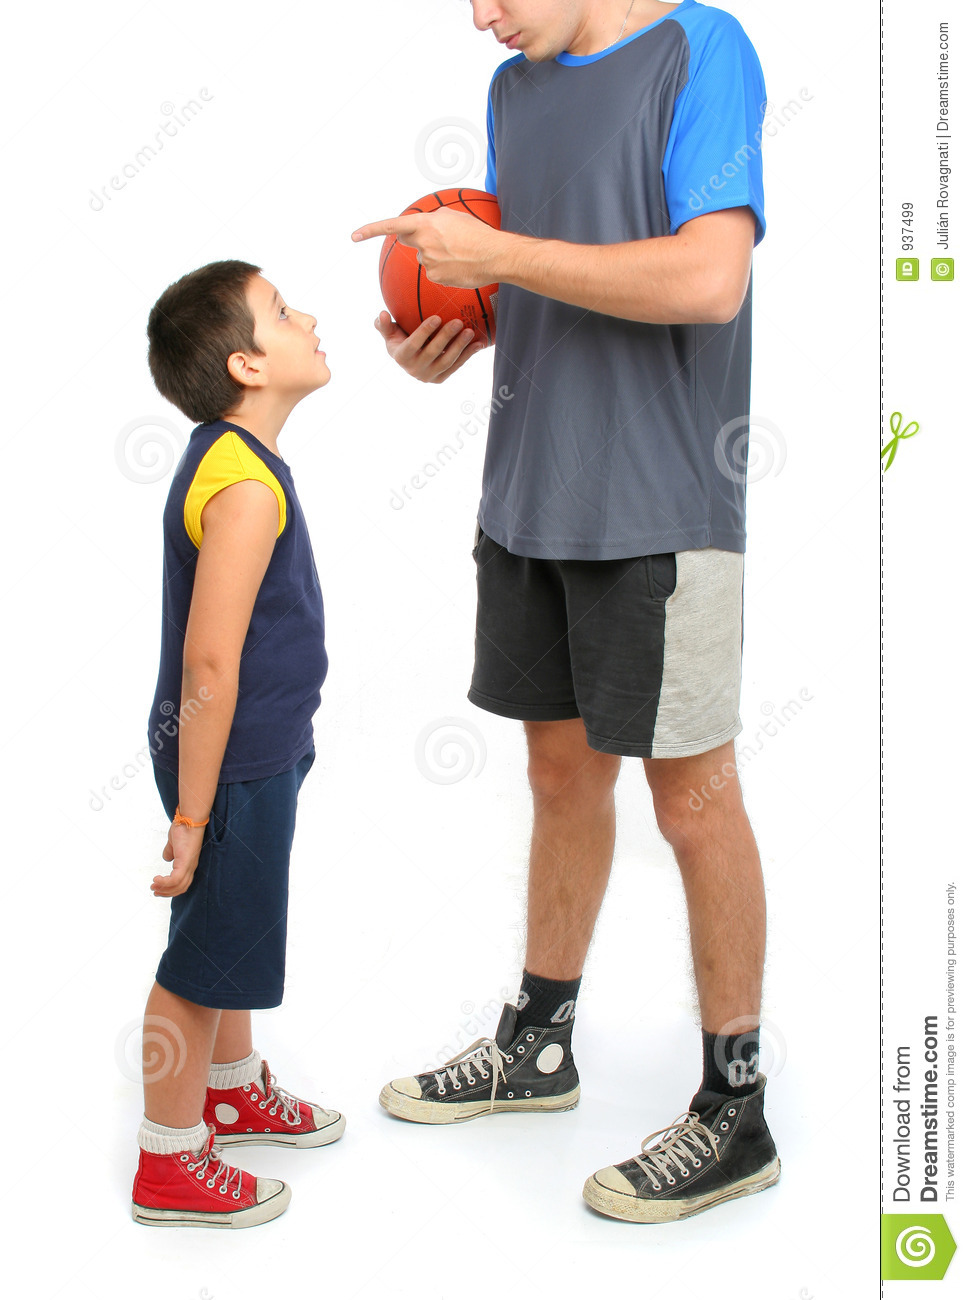 little boy asking big man to play basketball royalty free